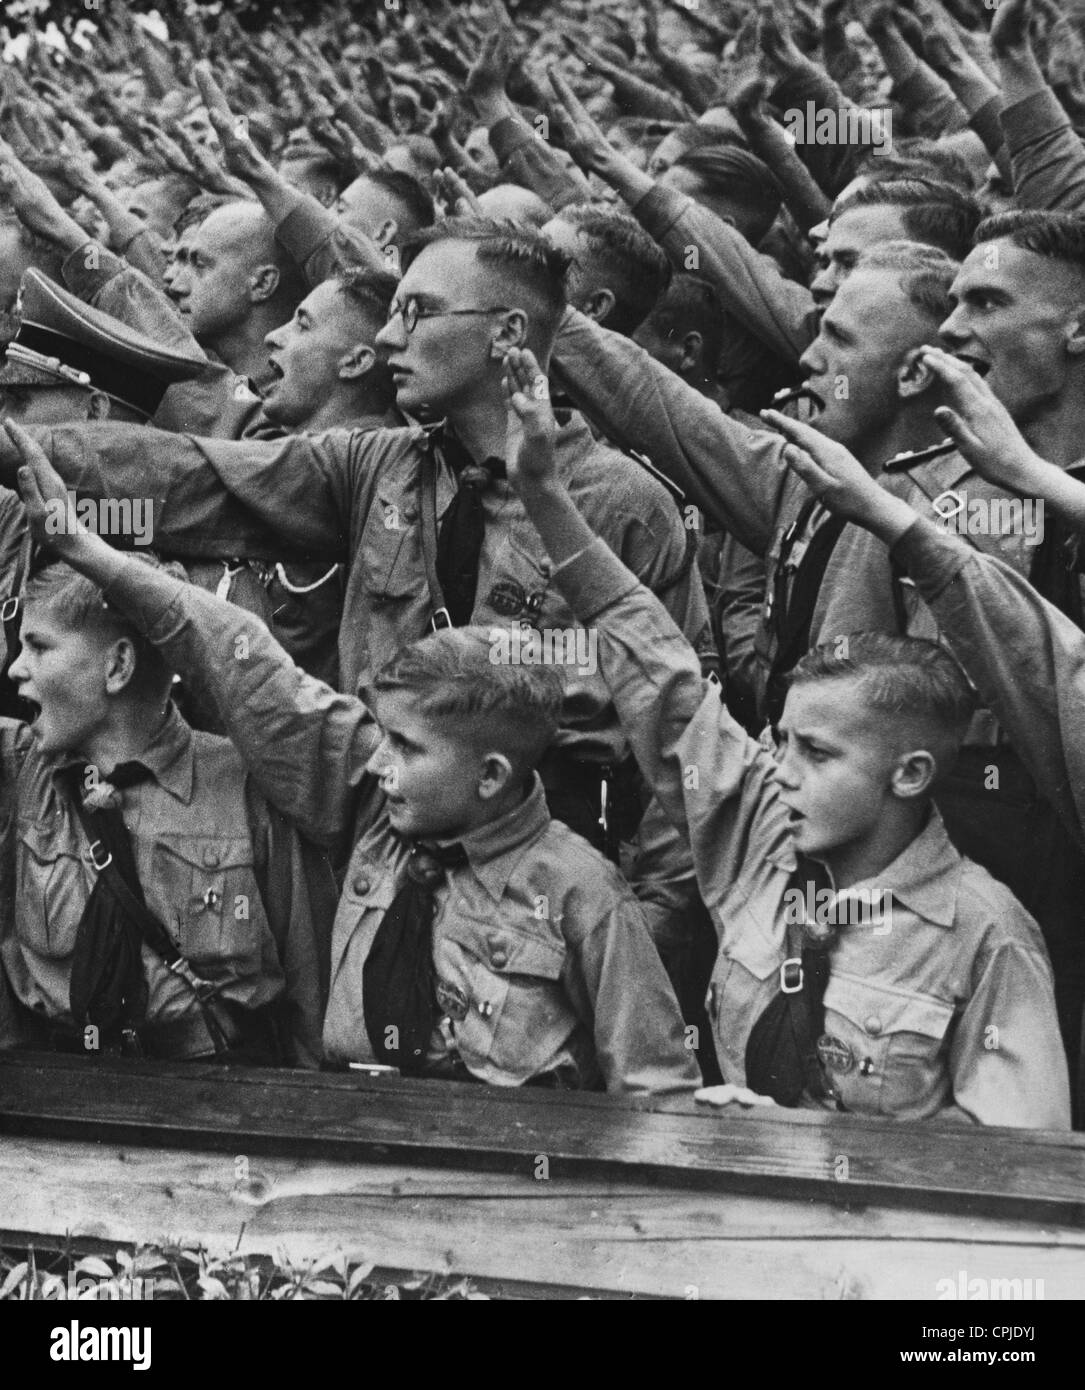 hitler and hitler youth The hitler youth movement changed over time from one of many competing youth movements to a powerful state state sponsored youth movement hitler from the beginning conceived a youth program as esential to the nazi program the hitler youth program was guided by an early nazi convert, baldur von.